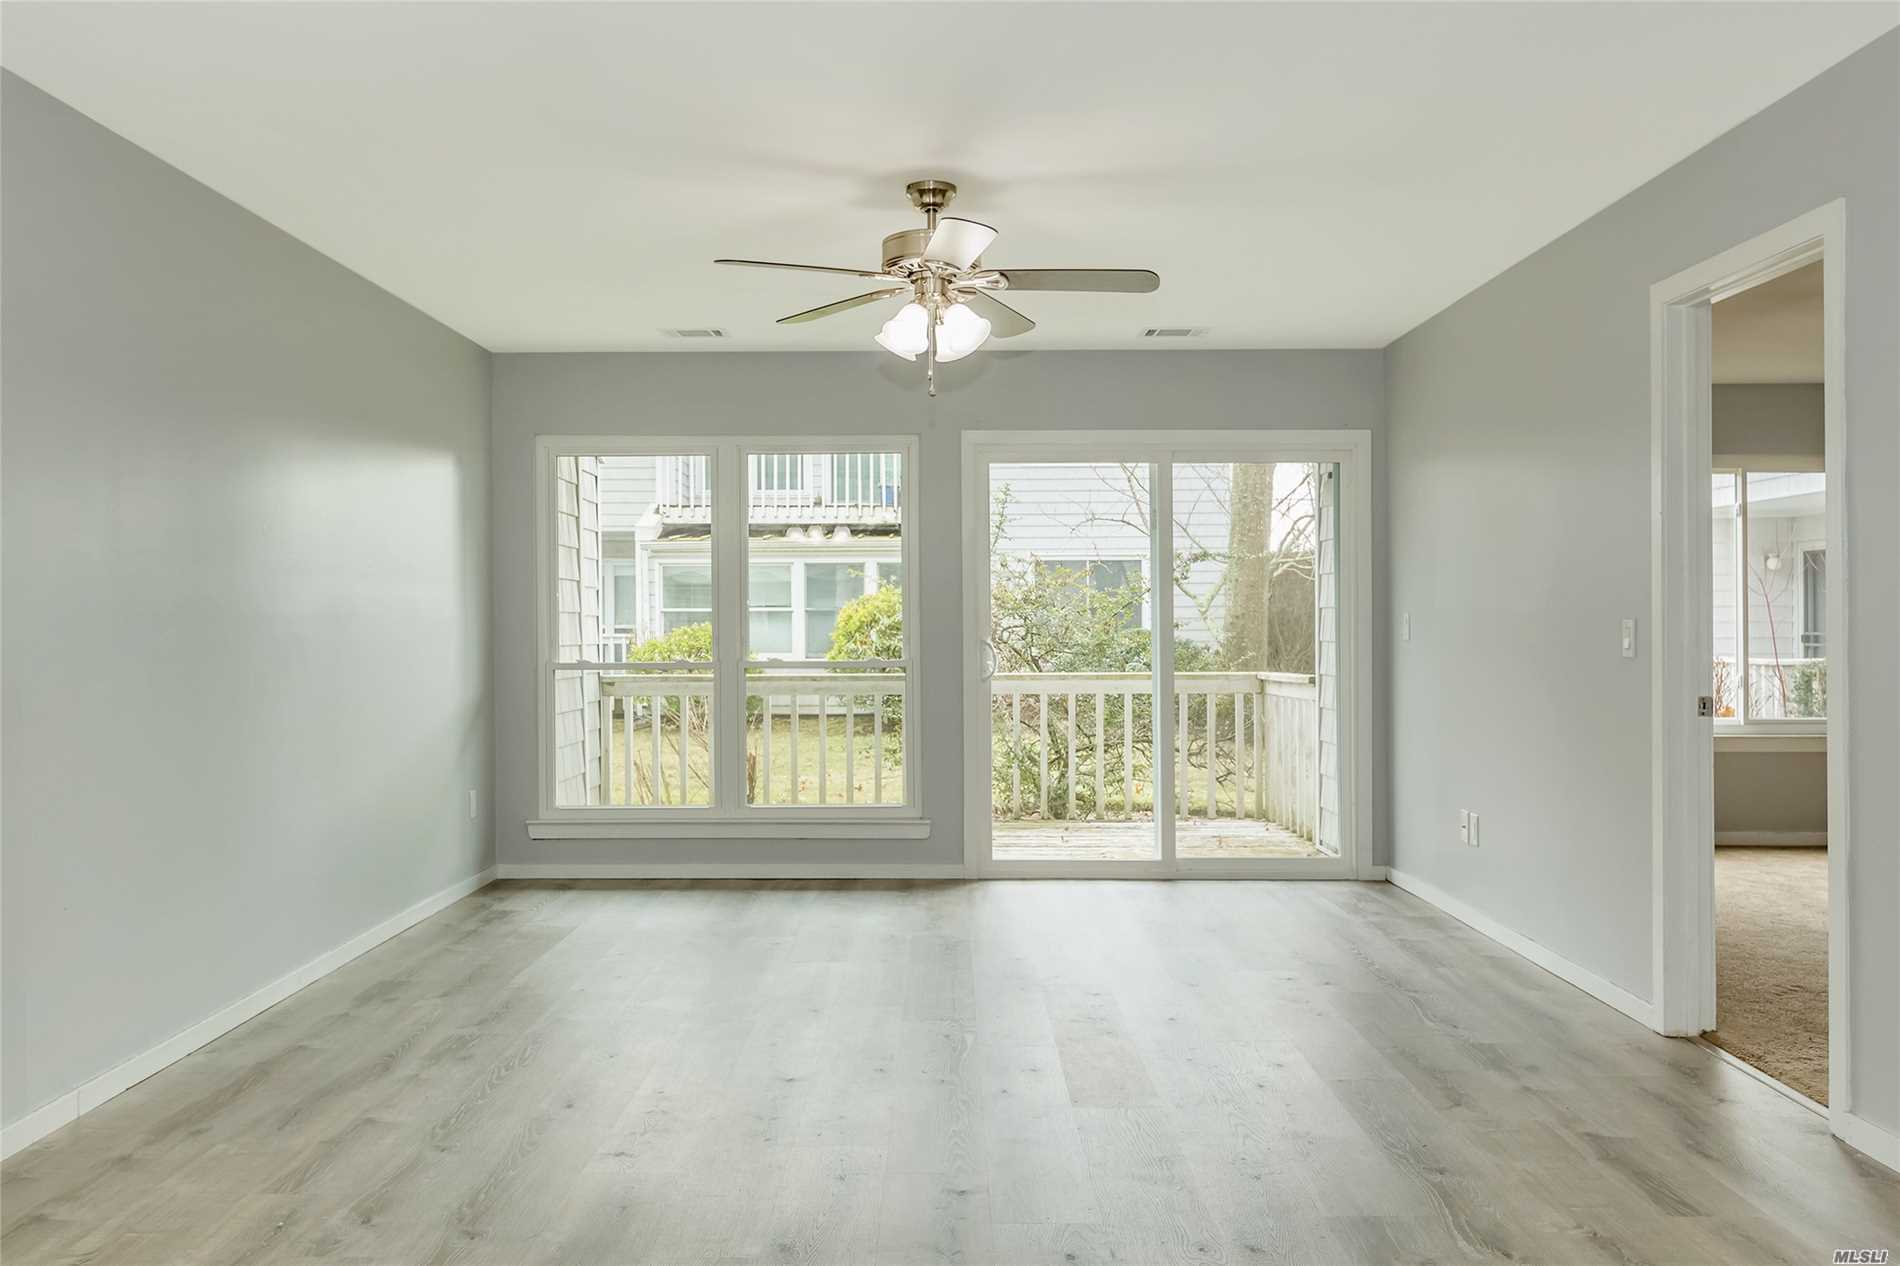 Priced To Sell..Renovated 1st Floor End Unit Condo; Kitchen, Floors And All New Windows...2 Bedroom/2 Full Bathrooms, Close To Town, Stores, Train And Beaches.